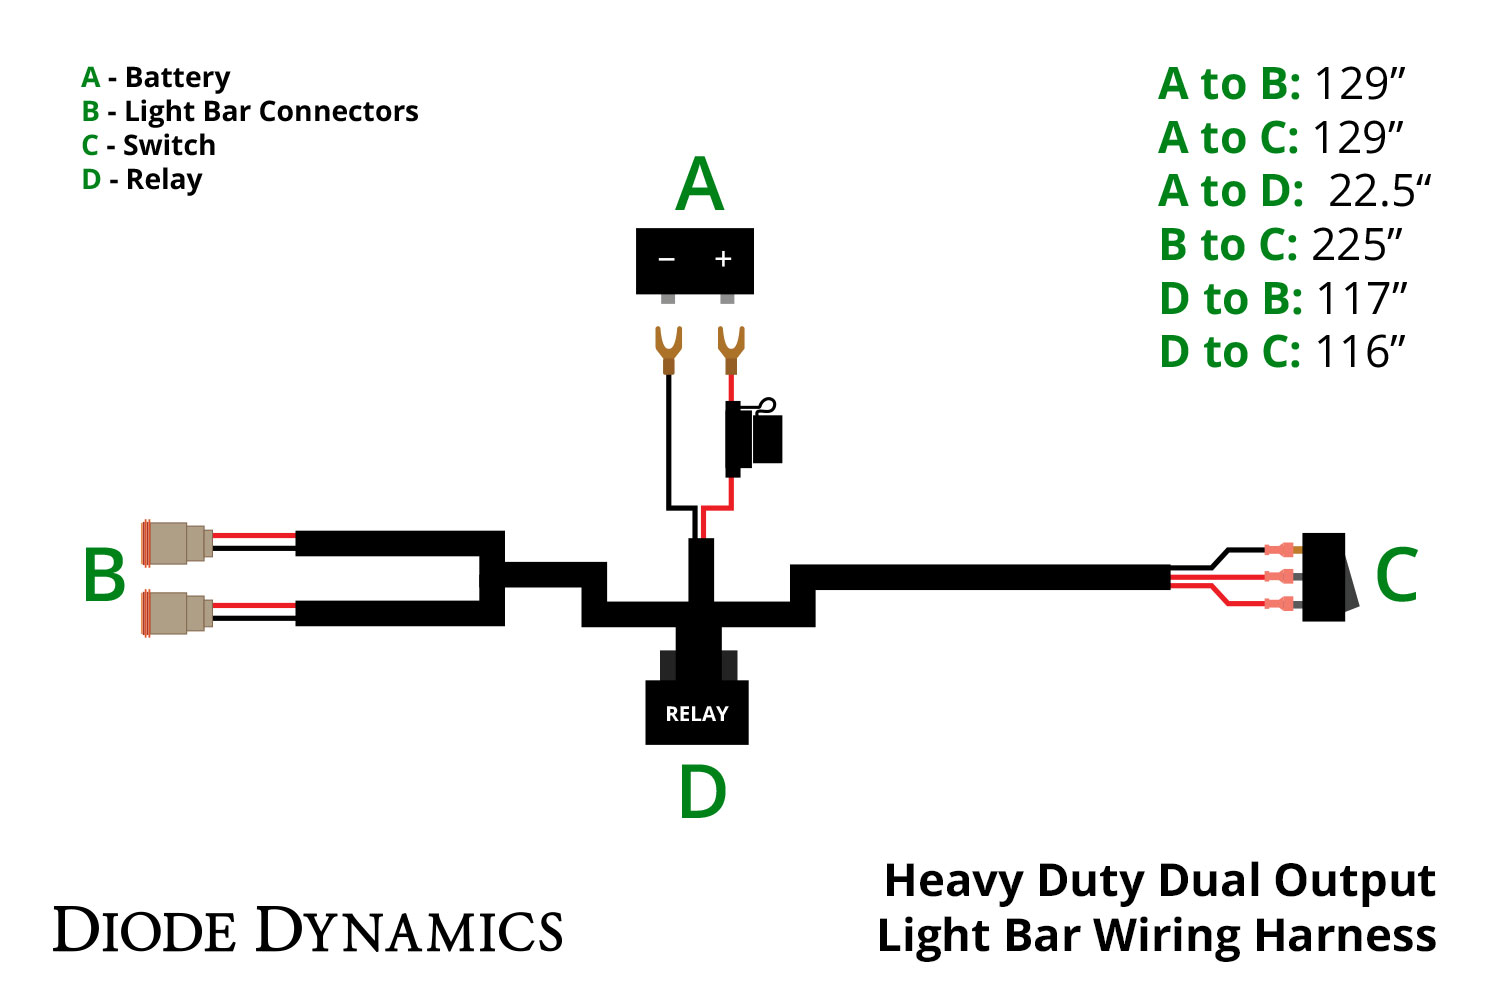 Heavy Duty Dual Output Light Bar Wiring Harness